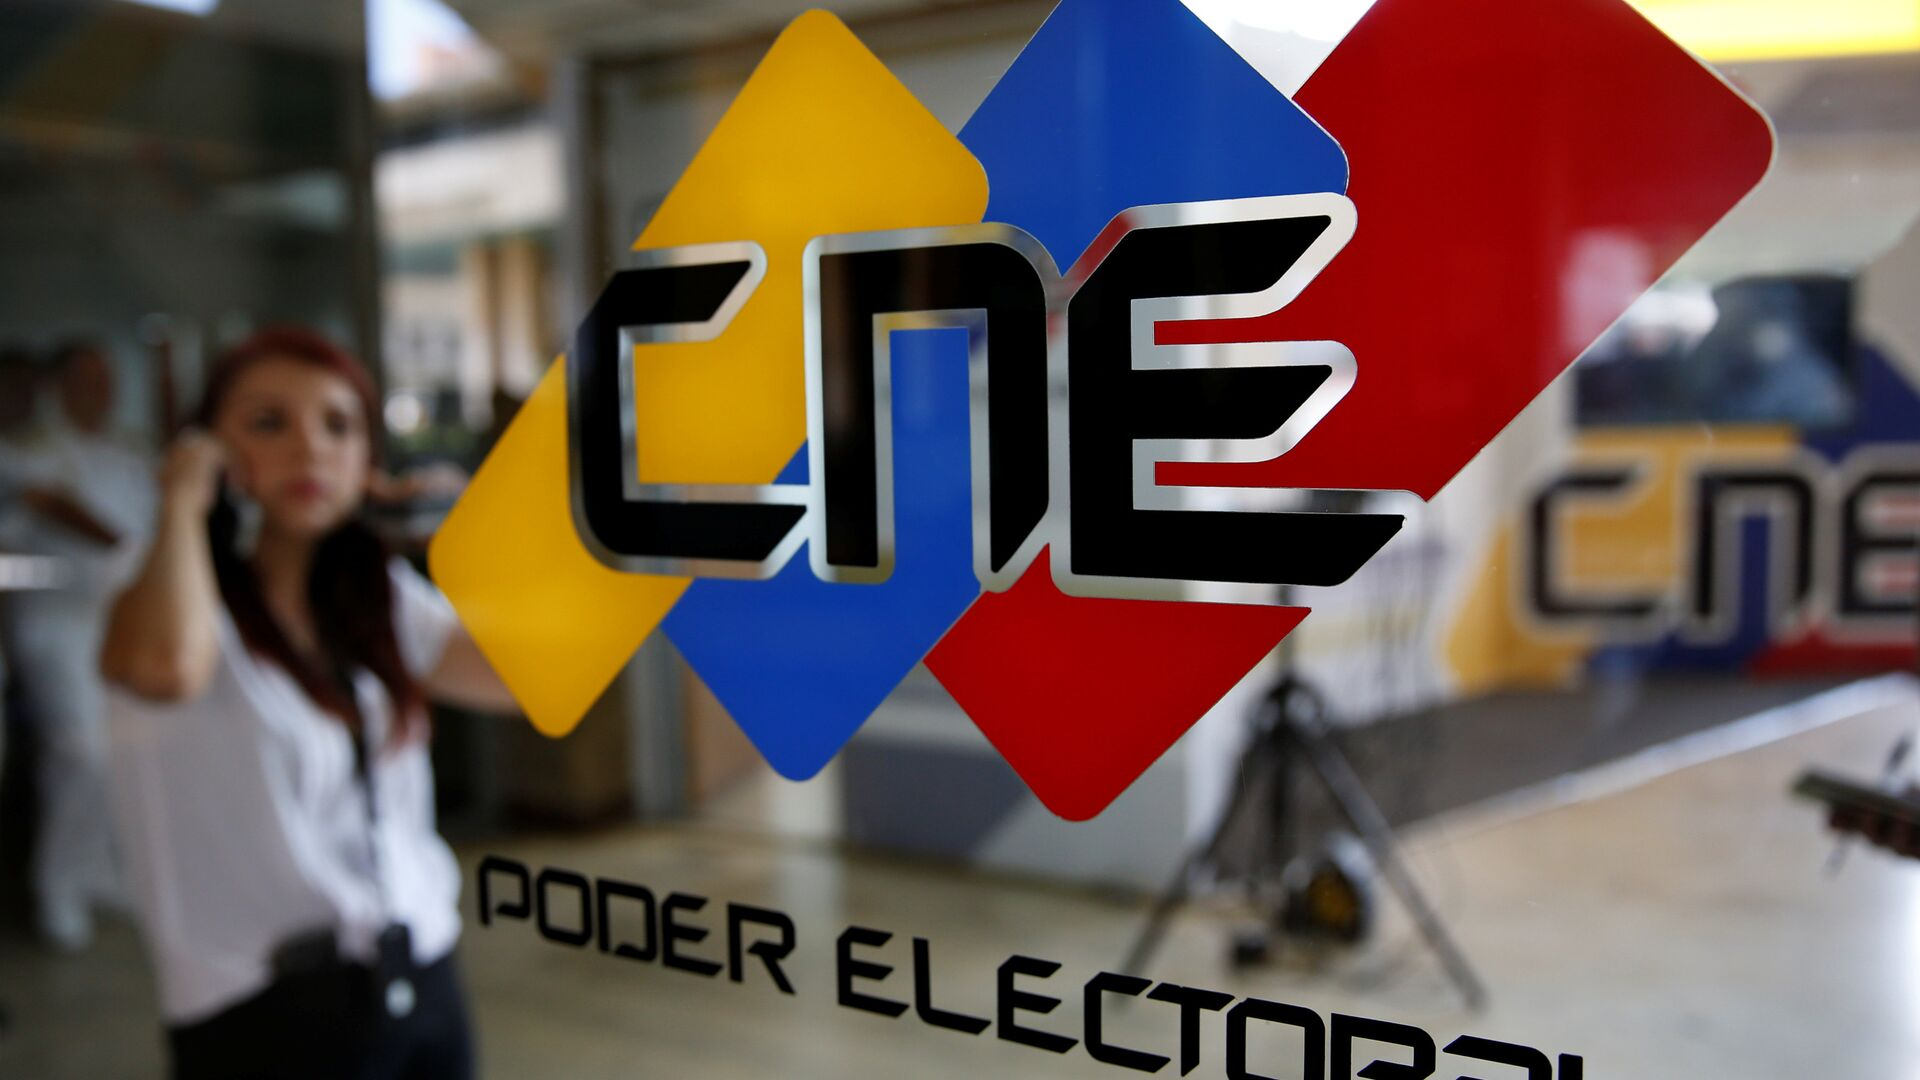 People walk past a logo of the National Electoral Council (CNE) at its headquarters in Caracas - Sputnik Mundo, 1920, 09.08.2021